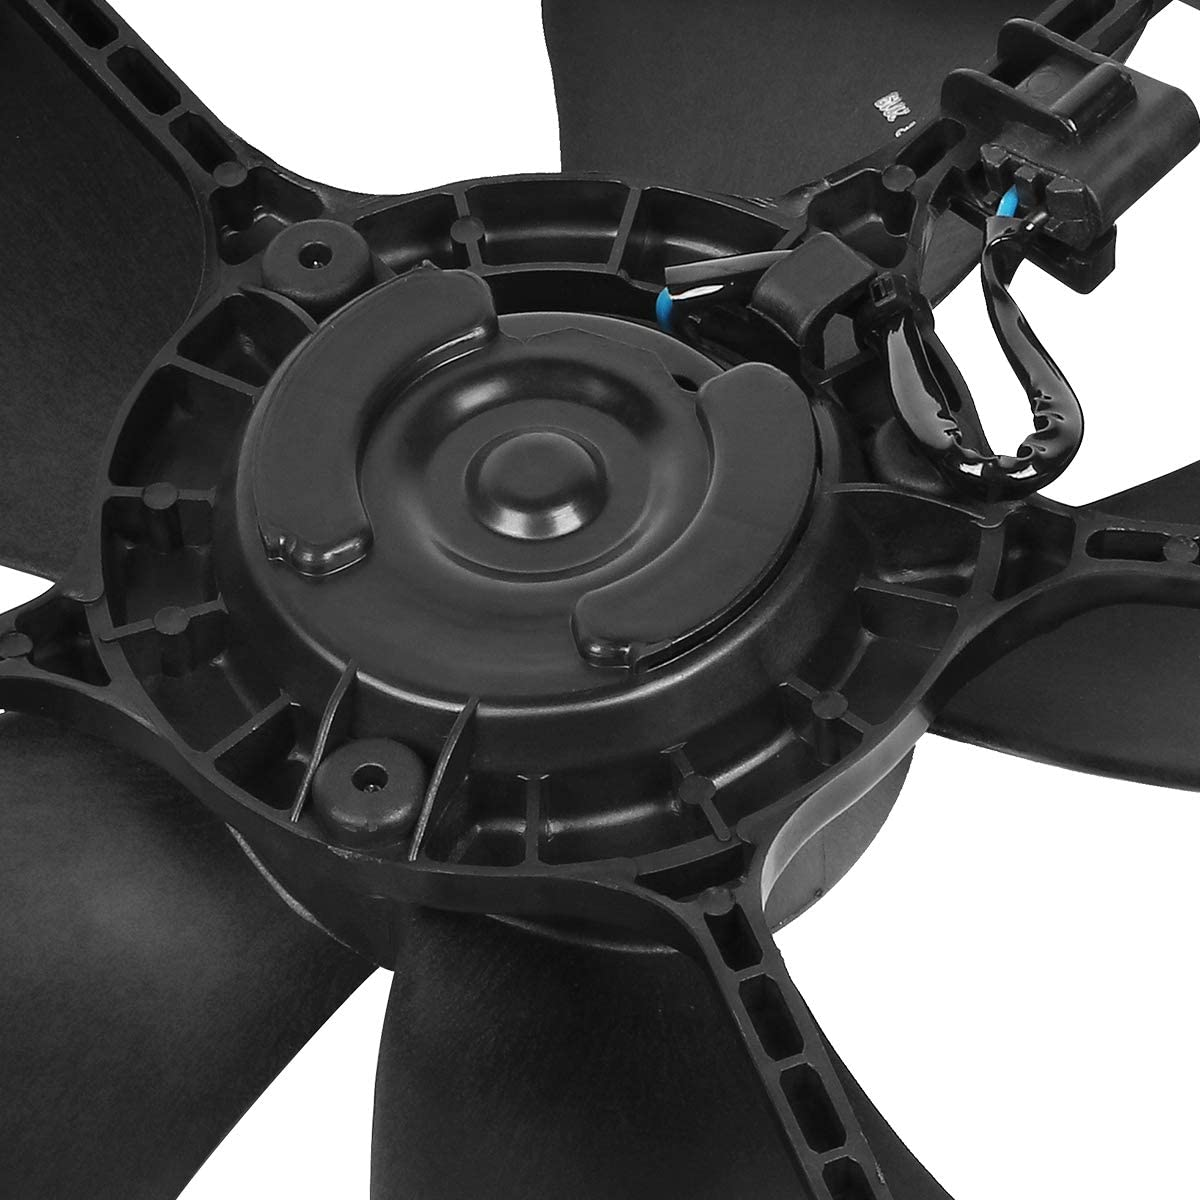 GM3115200 OE Style Radiator Cooling Fan Assembly Replacement for Chevy HHR 2.2L 2.4L 06-11